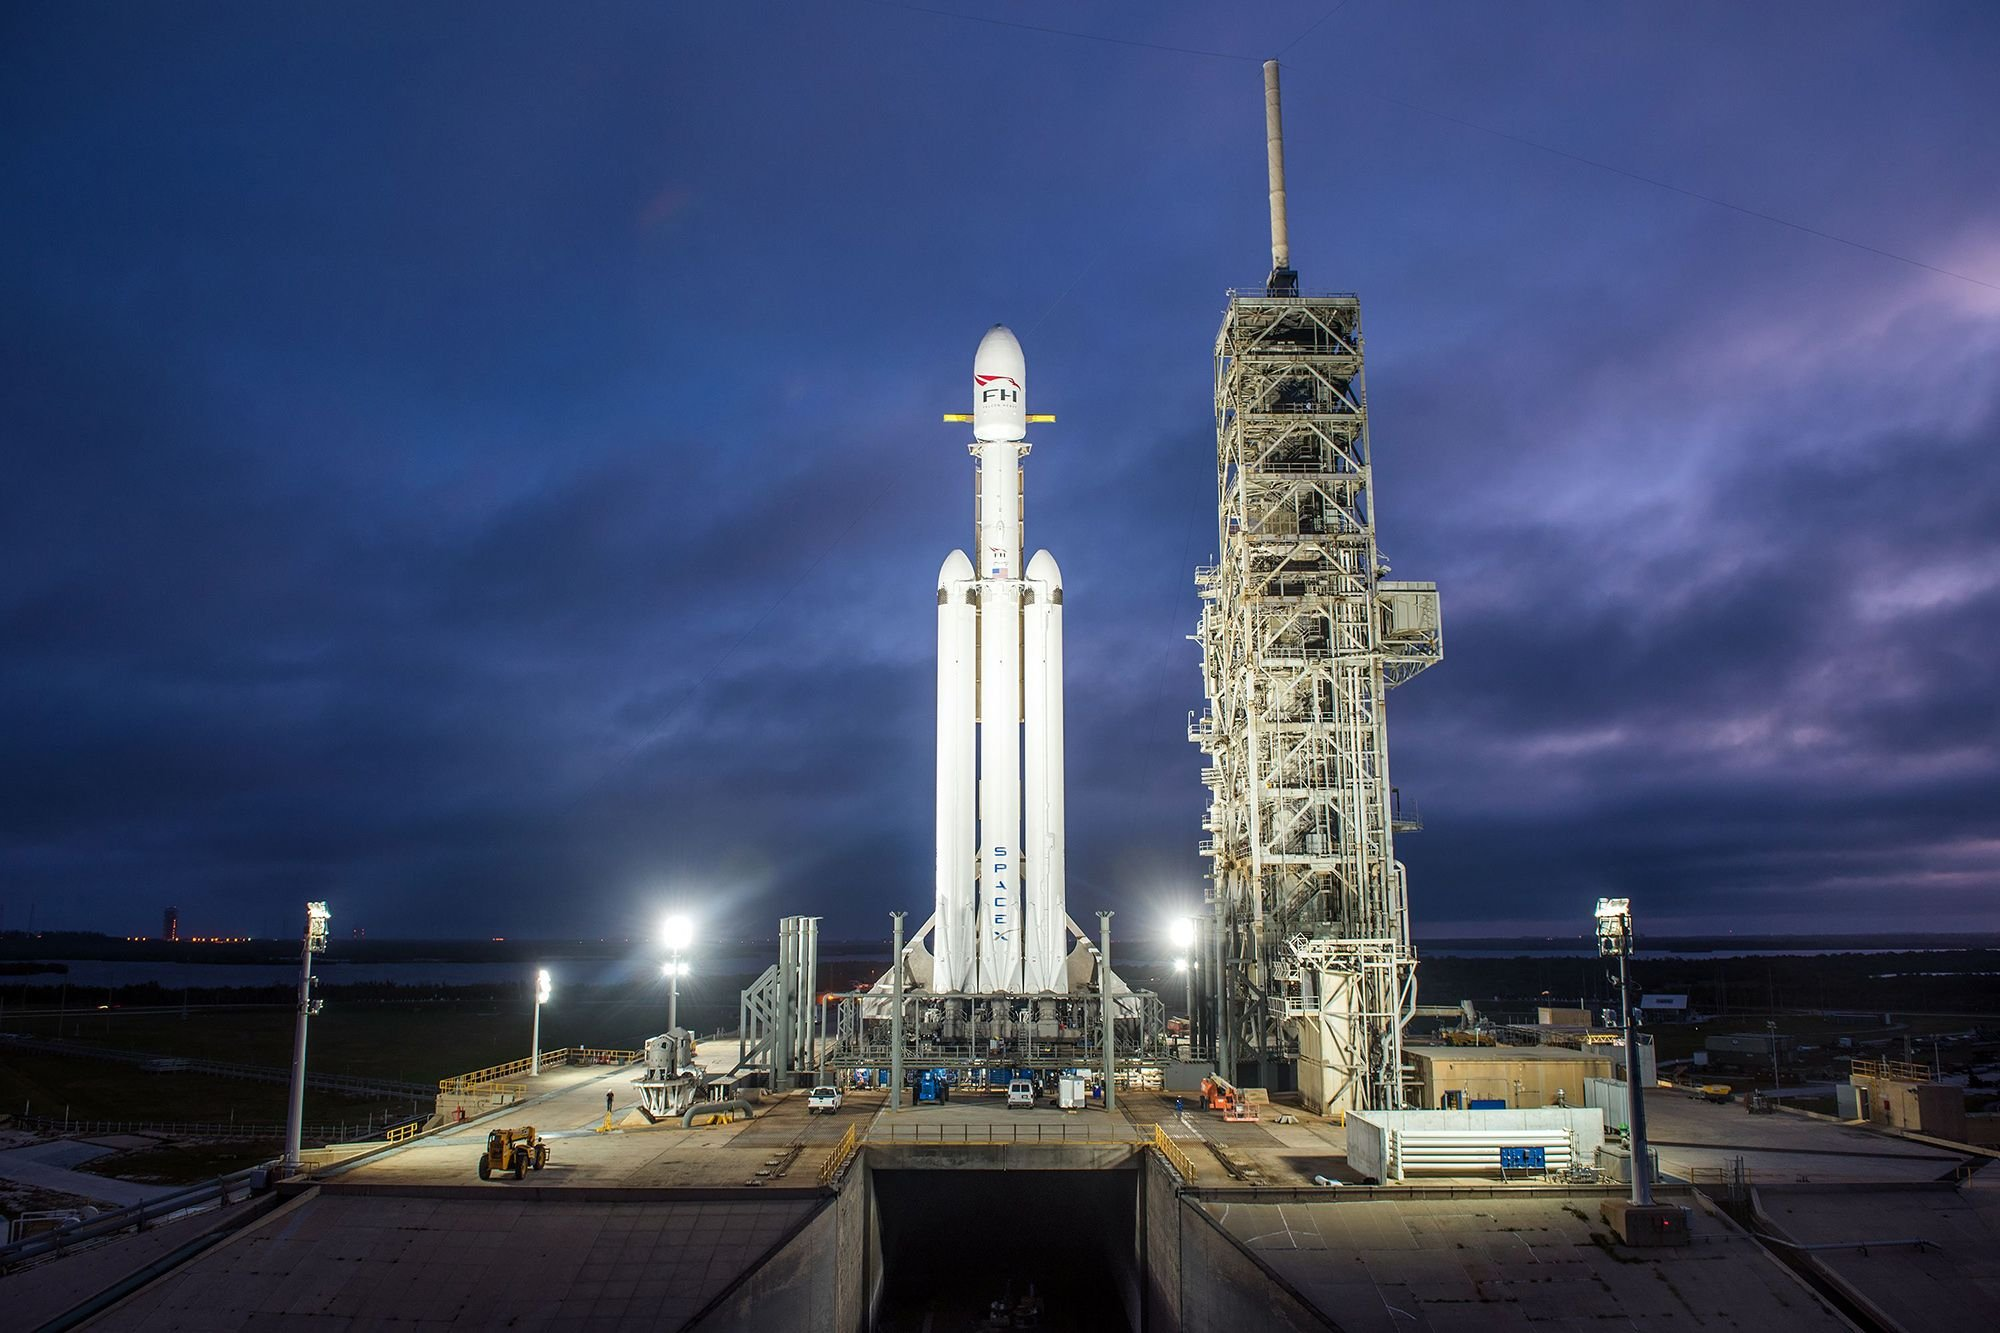 Unfortunately, SpaceX's Falcon Heavy can't launch while government is shutdown